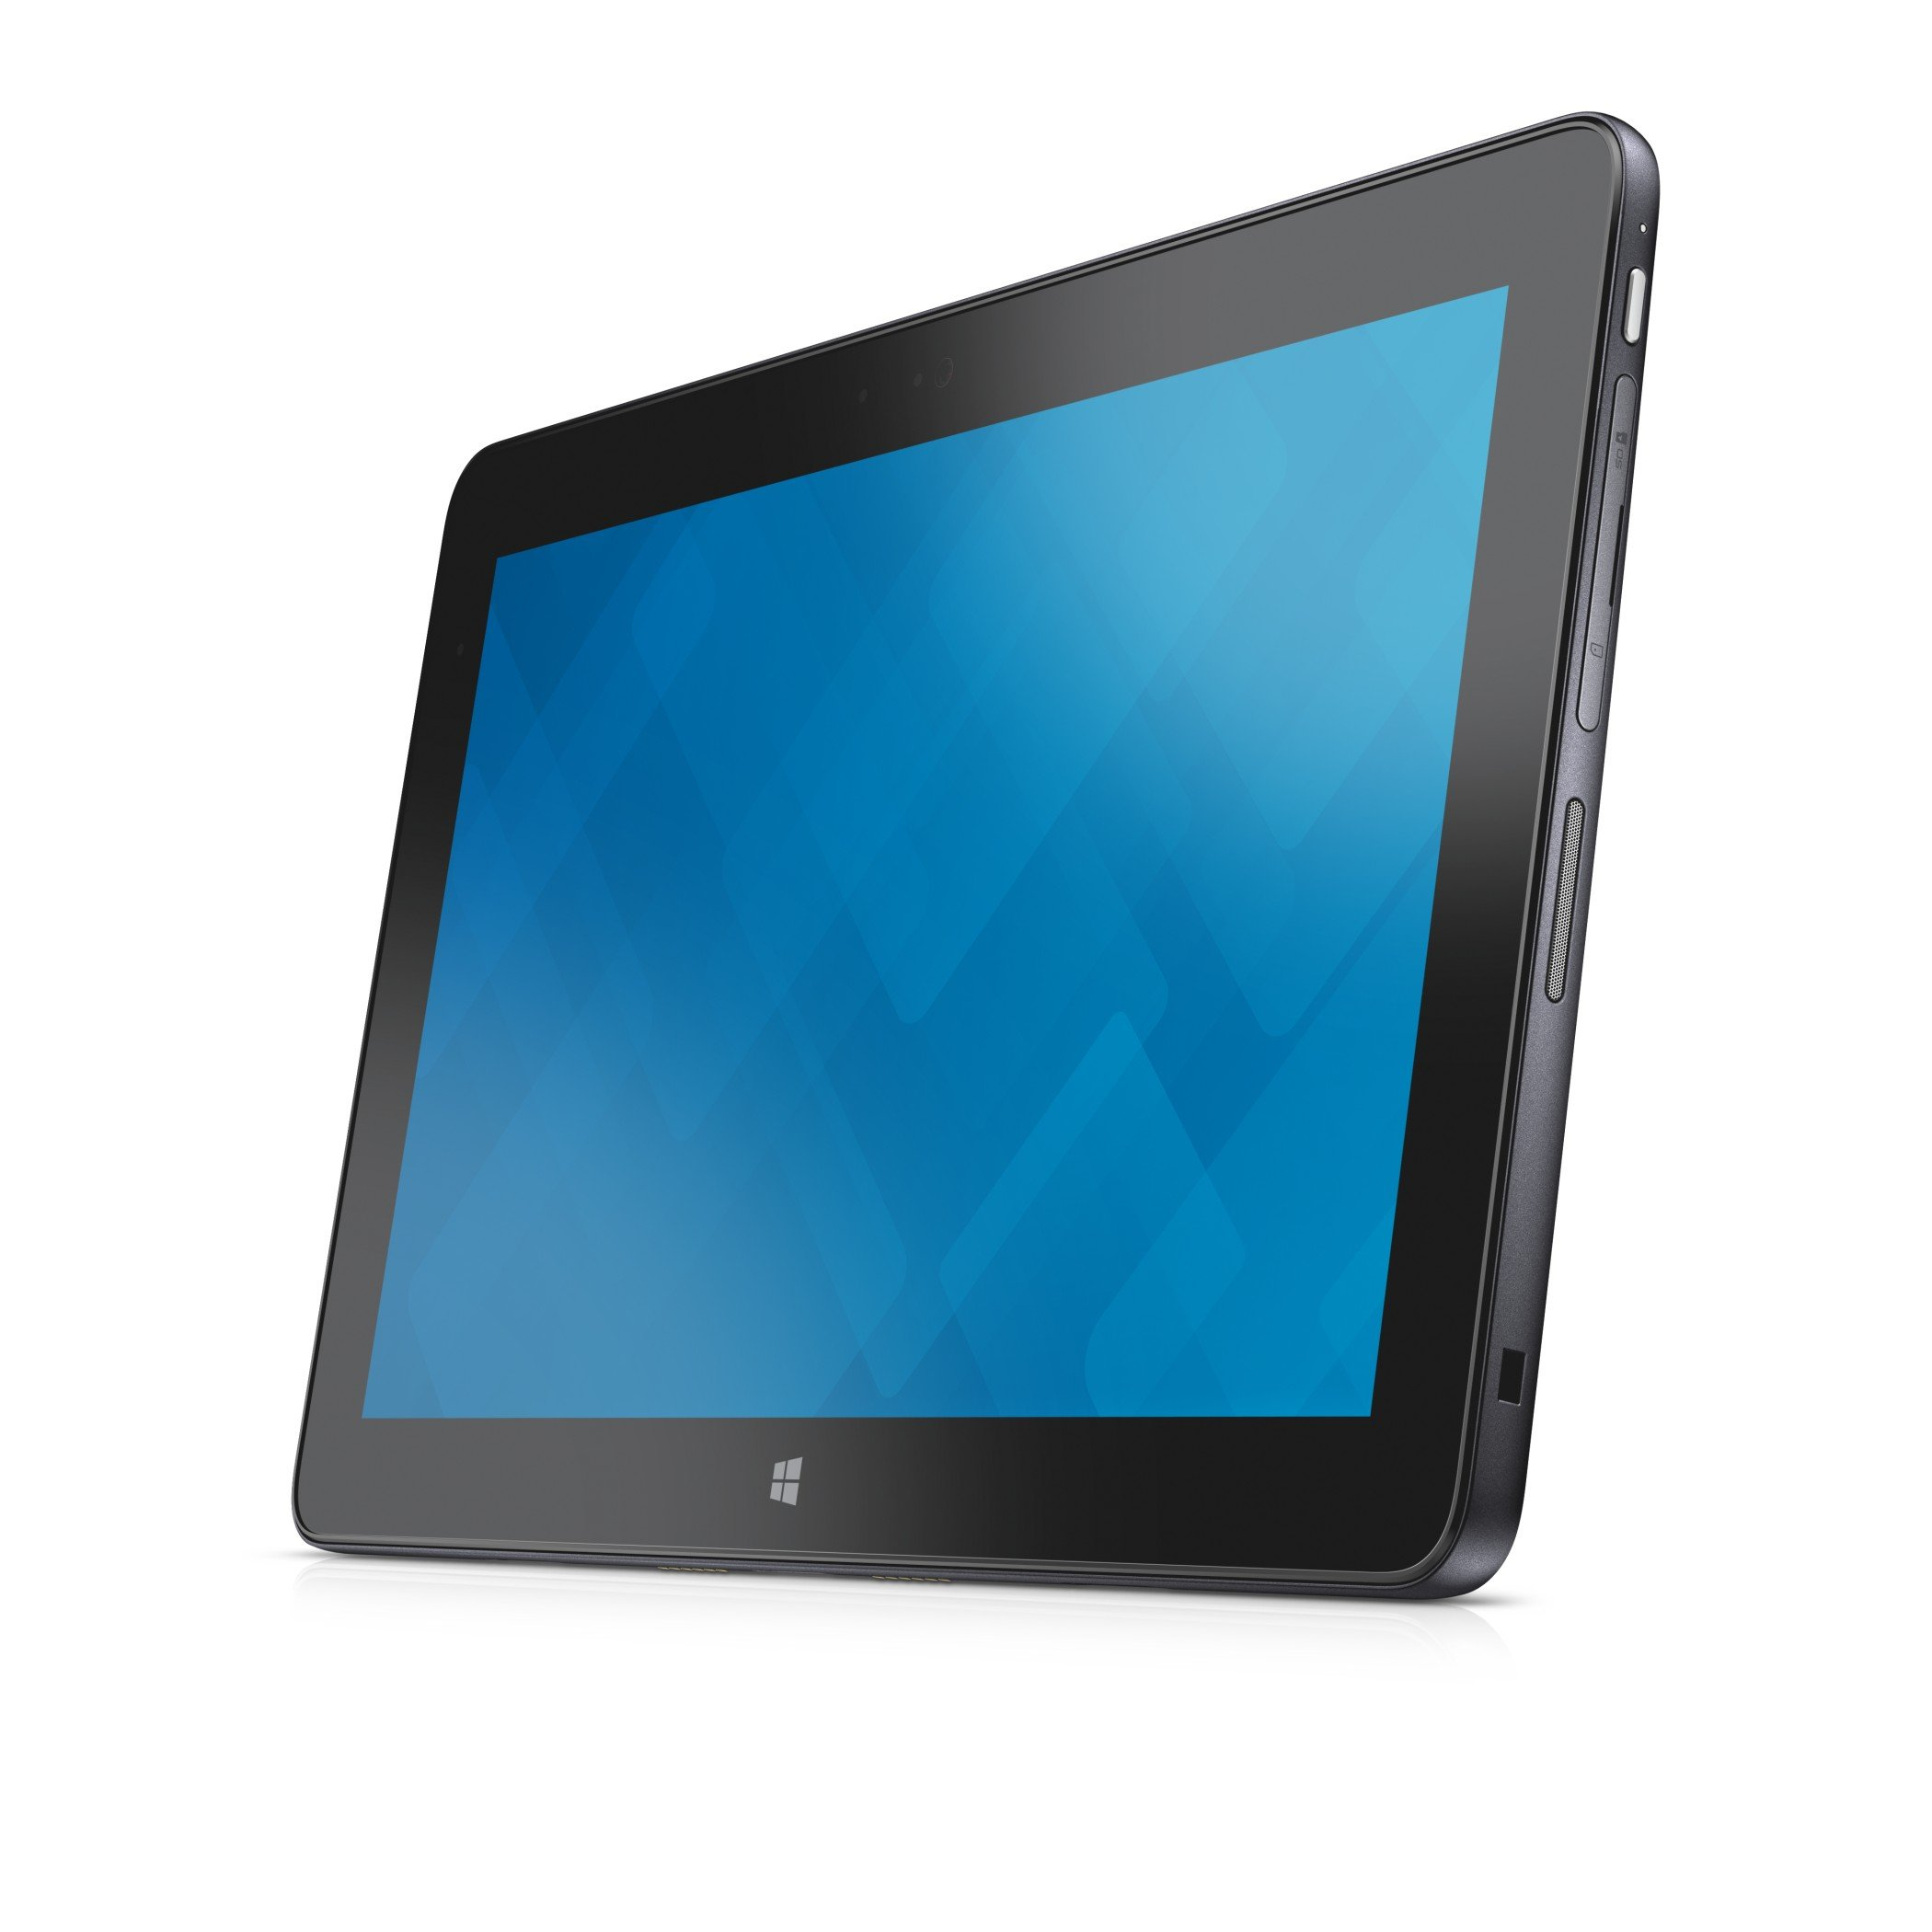 Harga Jual Laptop Dell Core I5 13 Inch